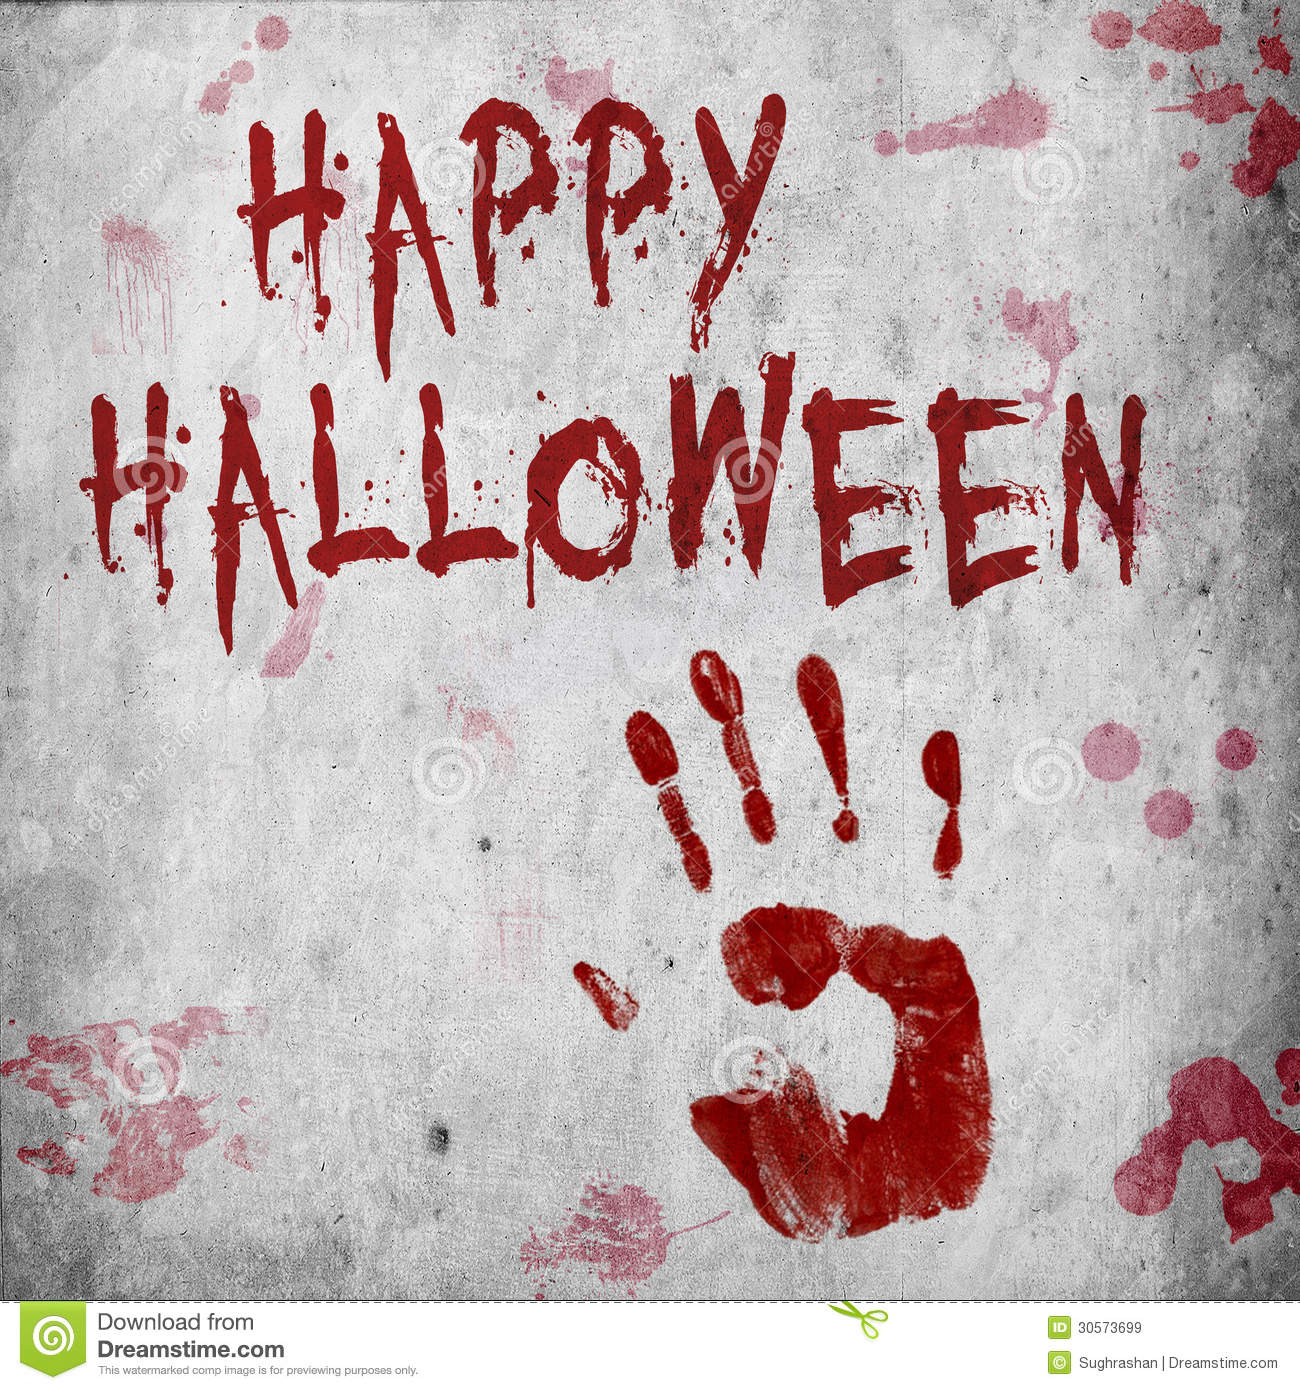 Home Decorating Blogs Blood Handprint Halloween Royalty Free Stock Images